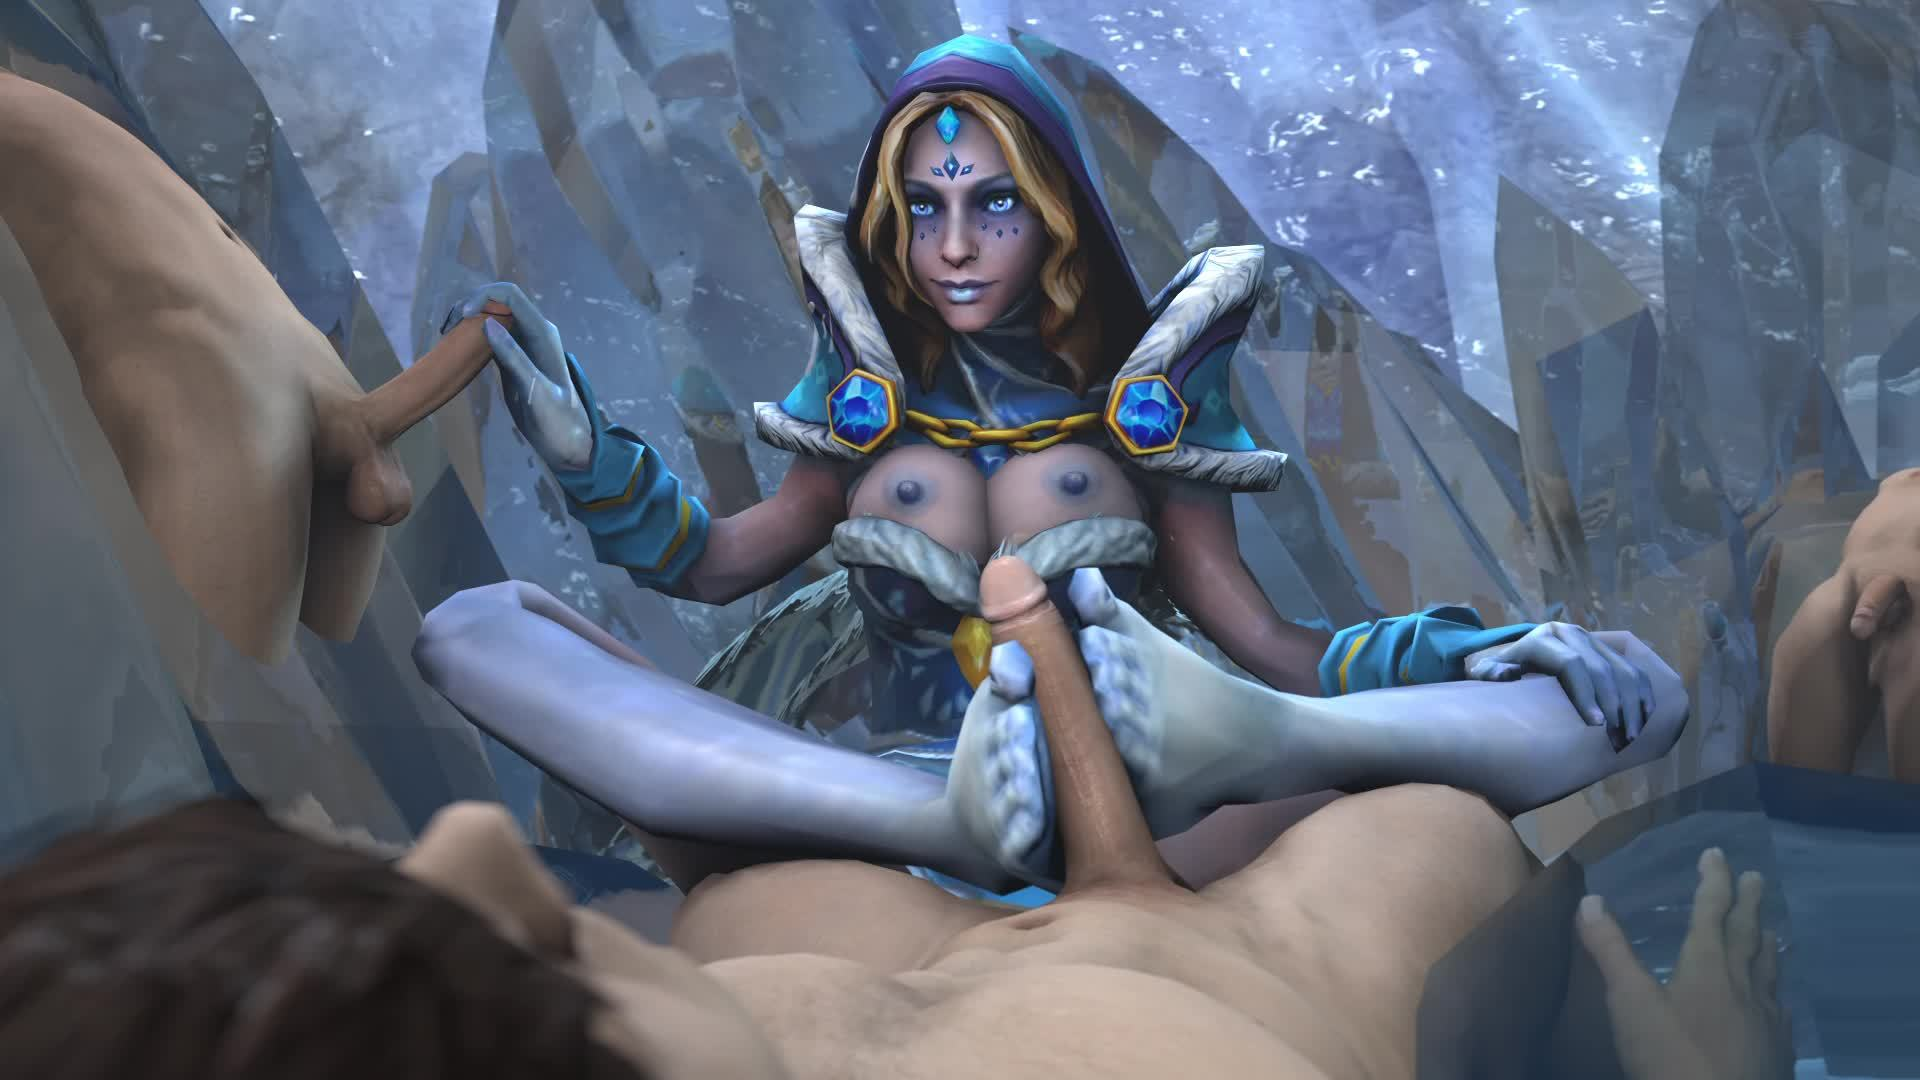 Dota anime sexy nude images fucking galleries